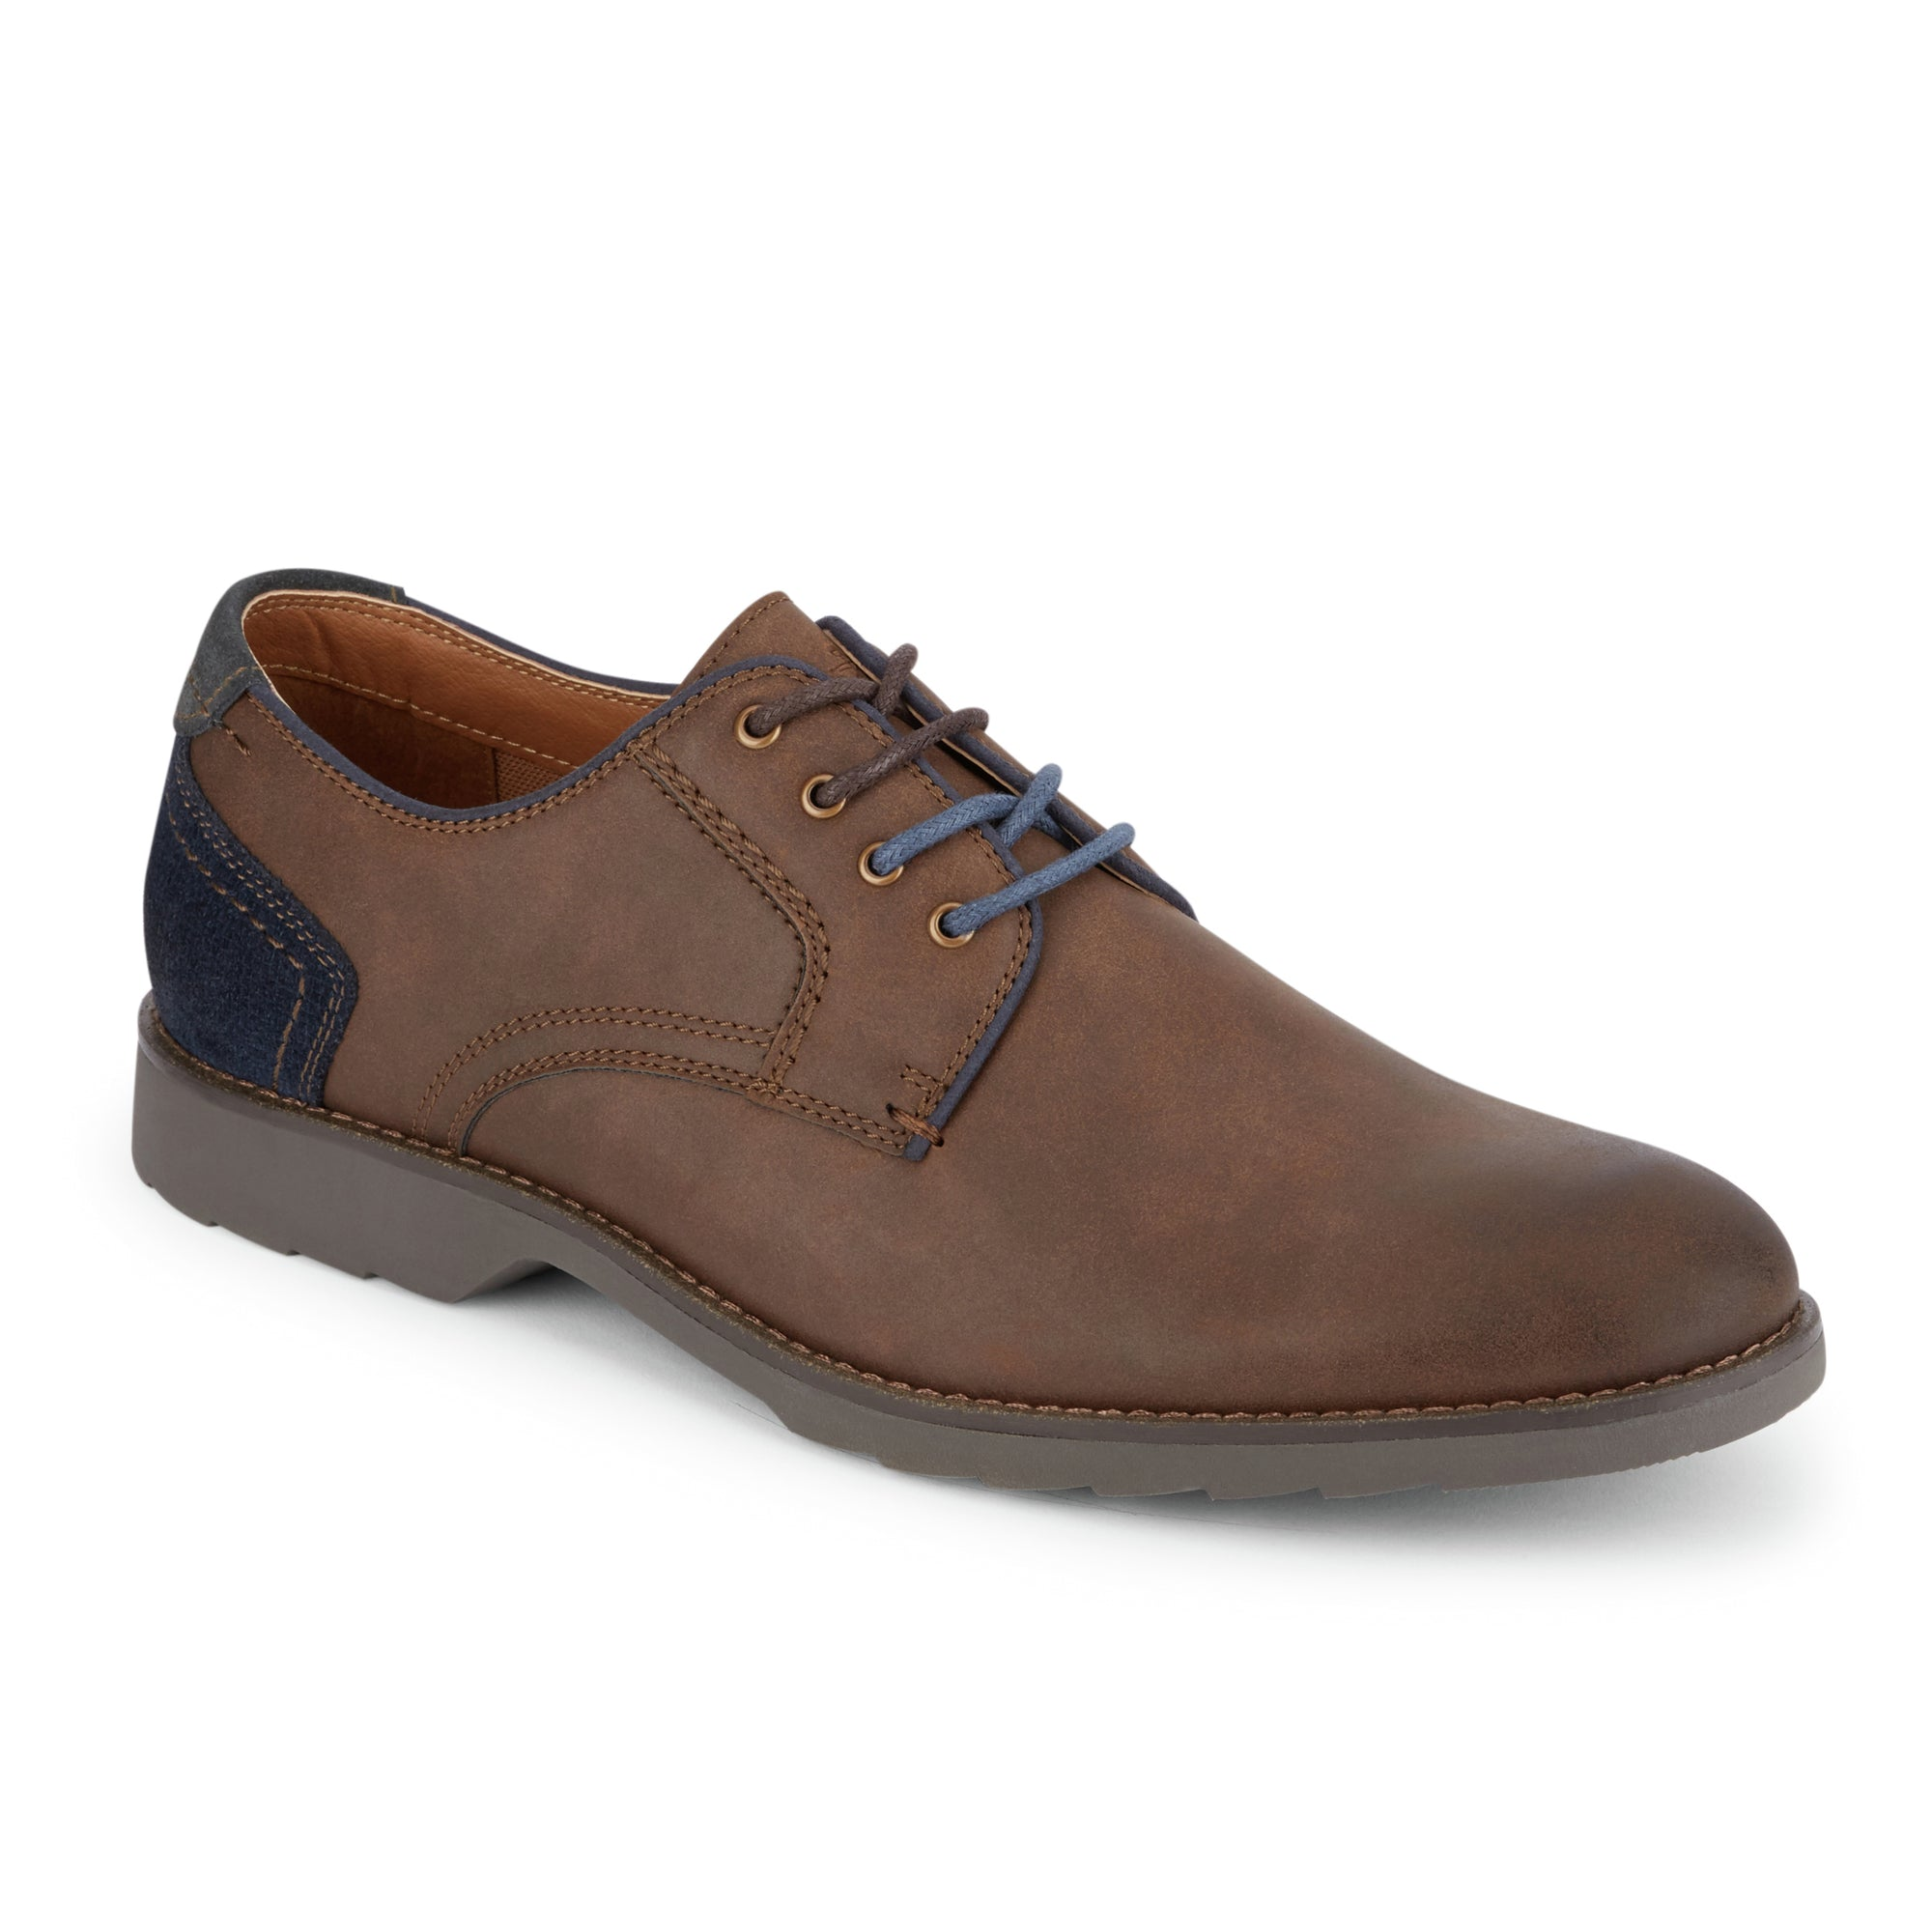 Dark Brown-Dockers Mens Moore Mixed Material Textile Casual Lace-up Plain Toe Oxford Shoe